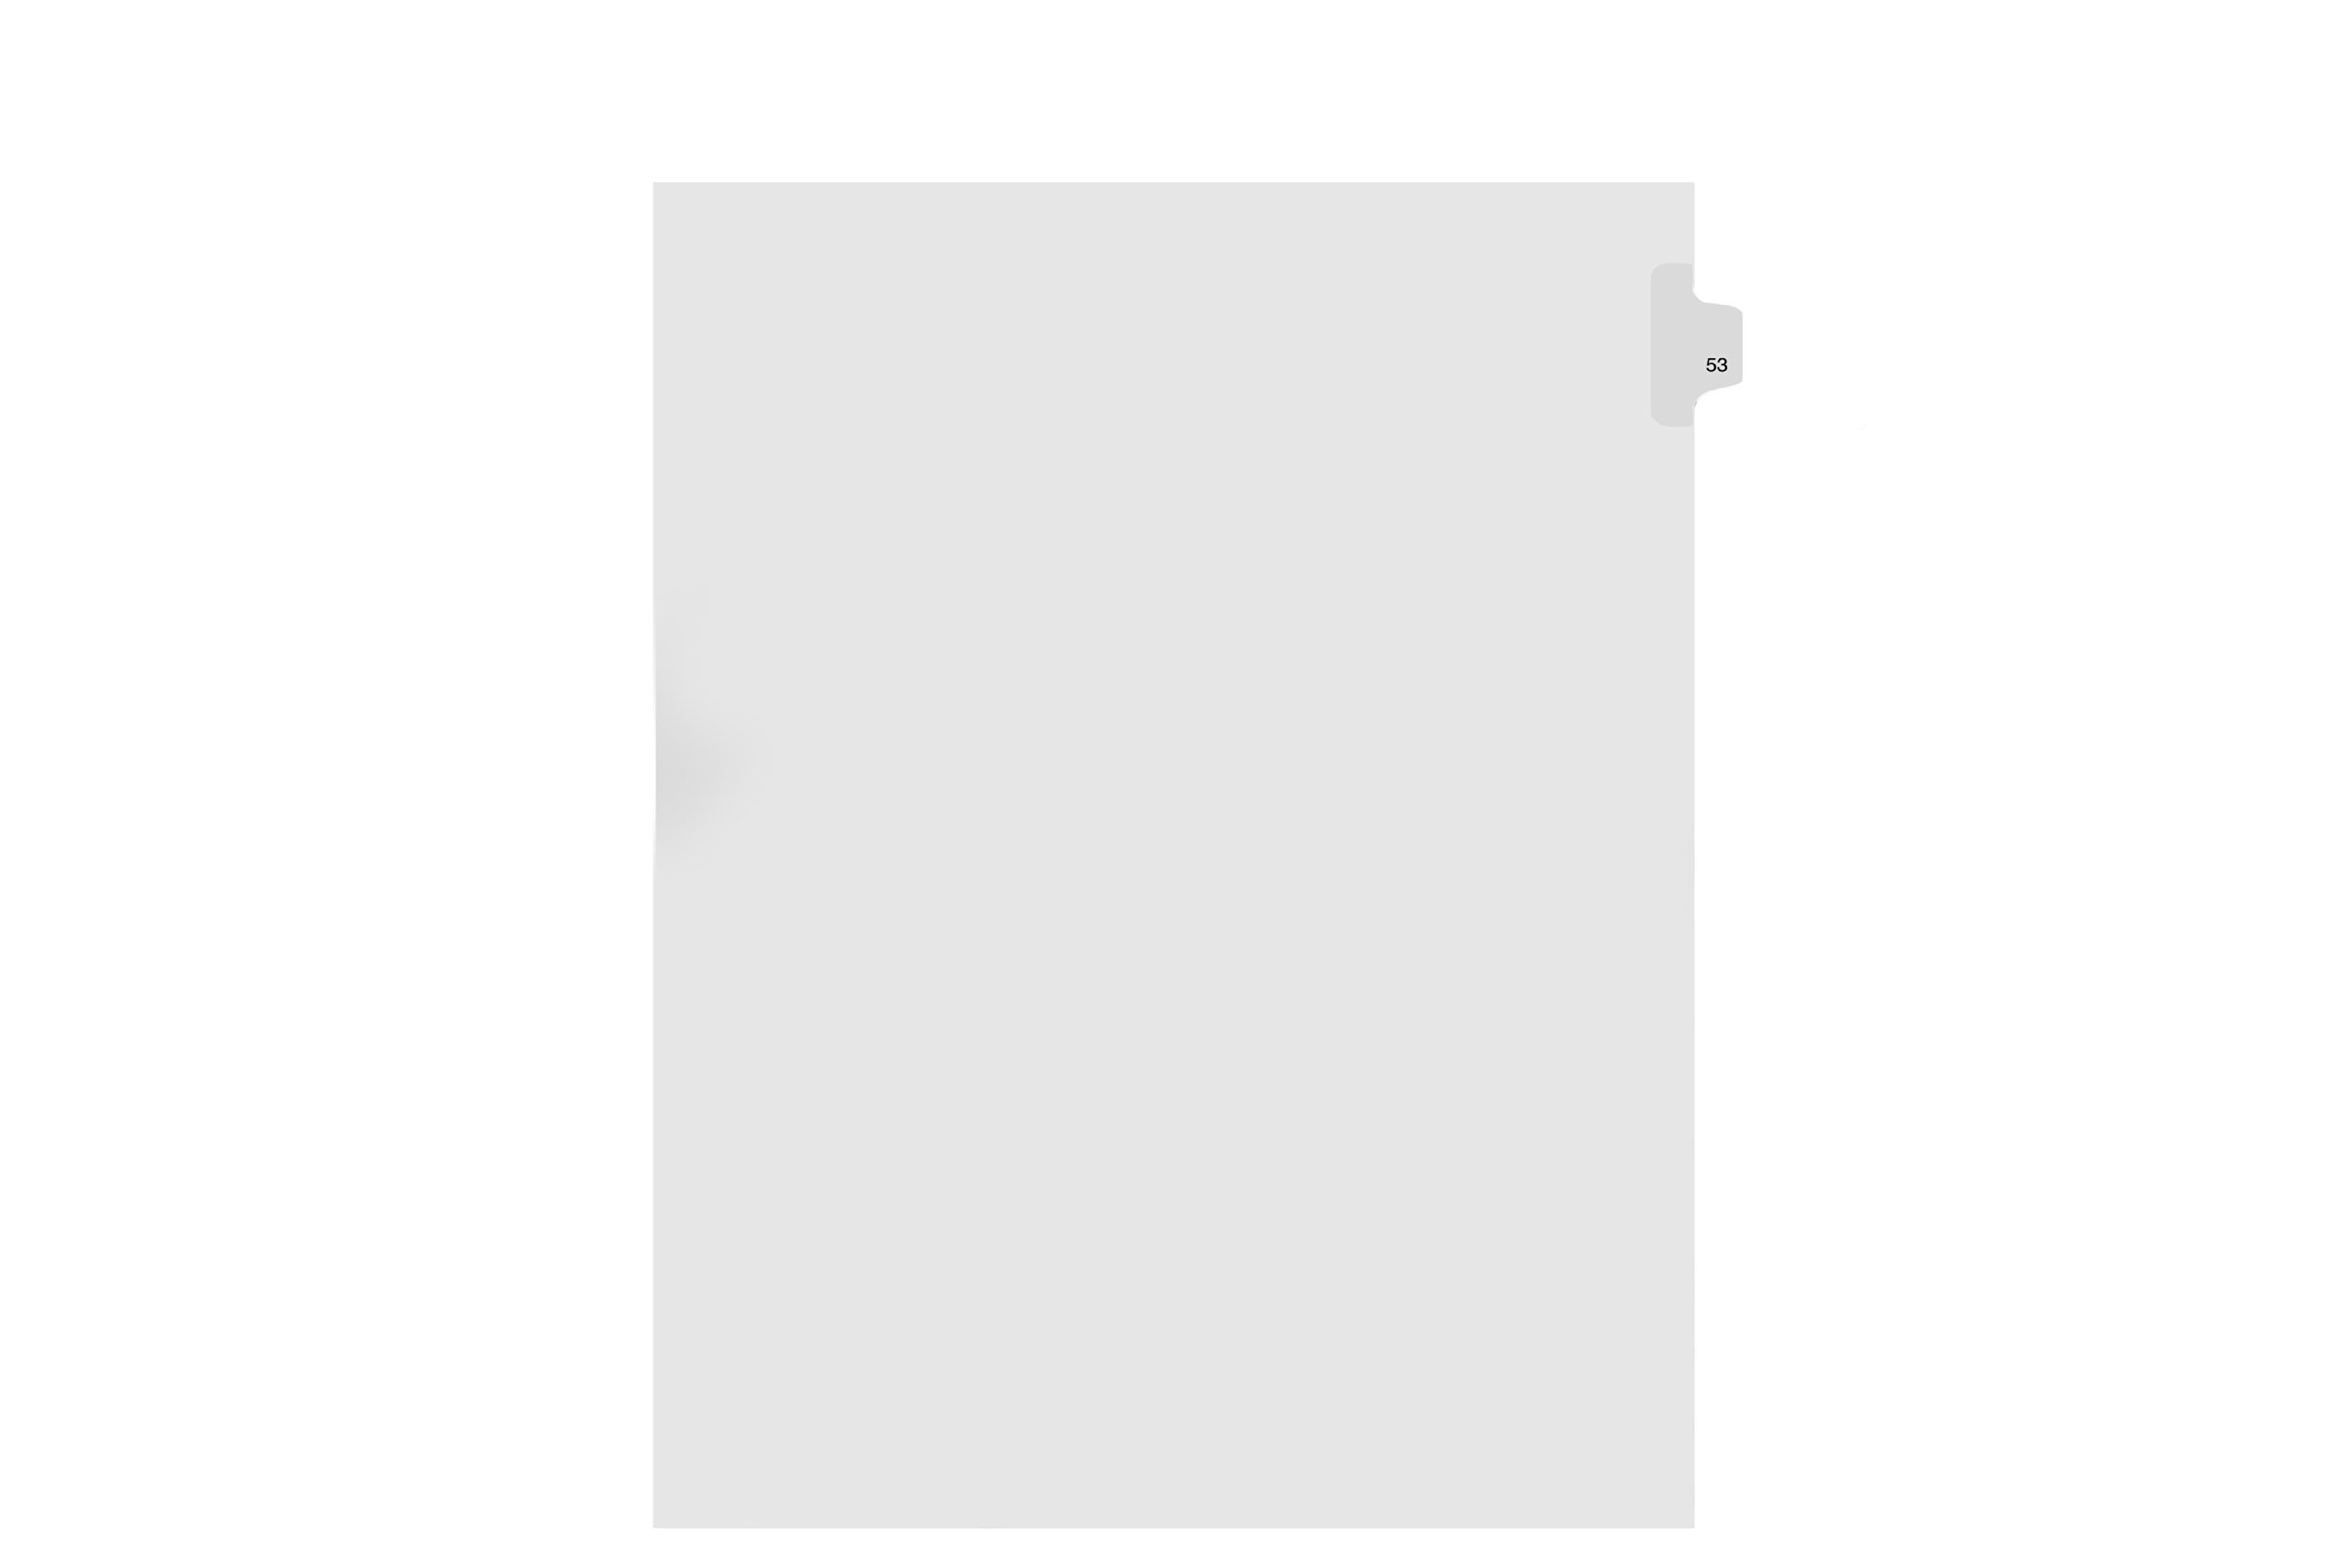 Kleer-Fax Letter Size Individually Numbered 1/25th Cut Side Tab Index Dividers, 25 Sheets per Pack, White, Number 53 (91053)